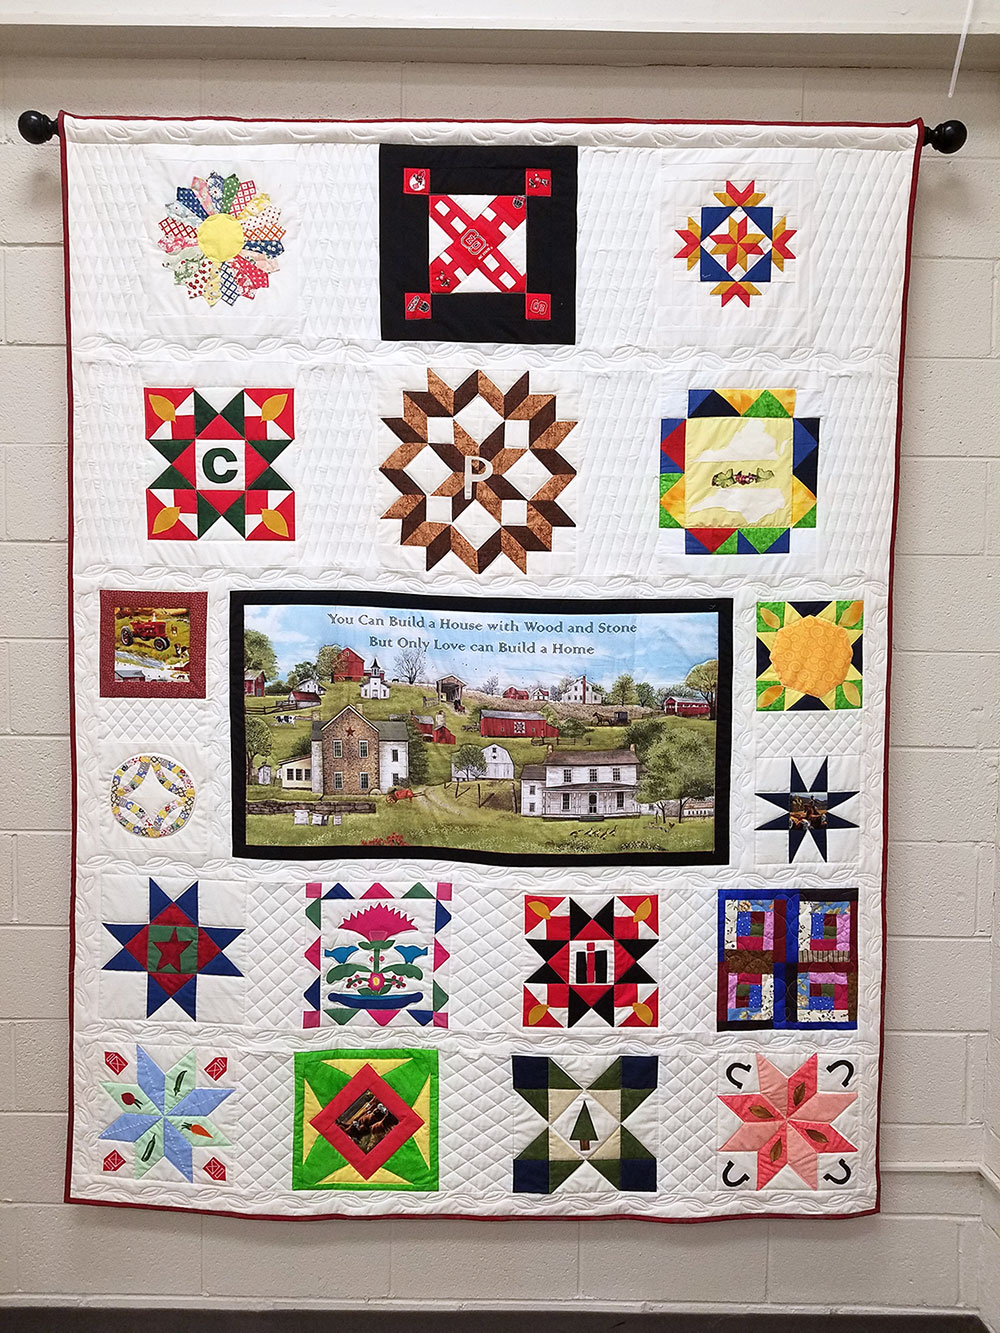 Rockingham Extension Center Quilt